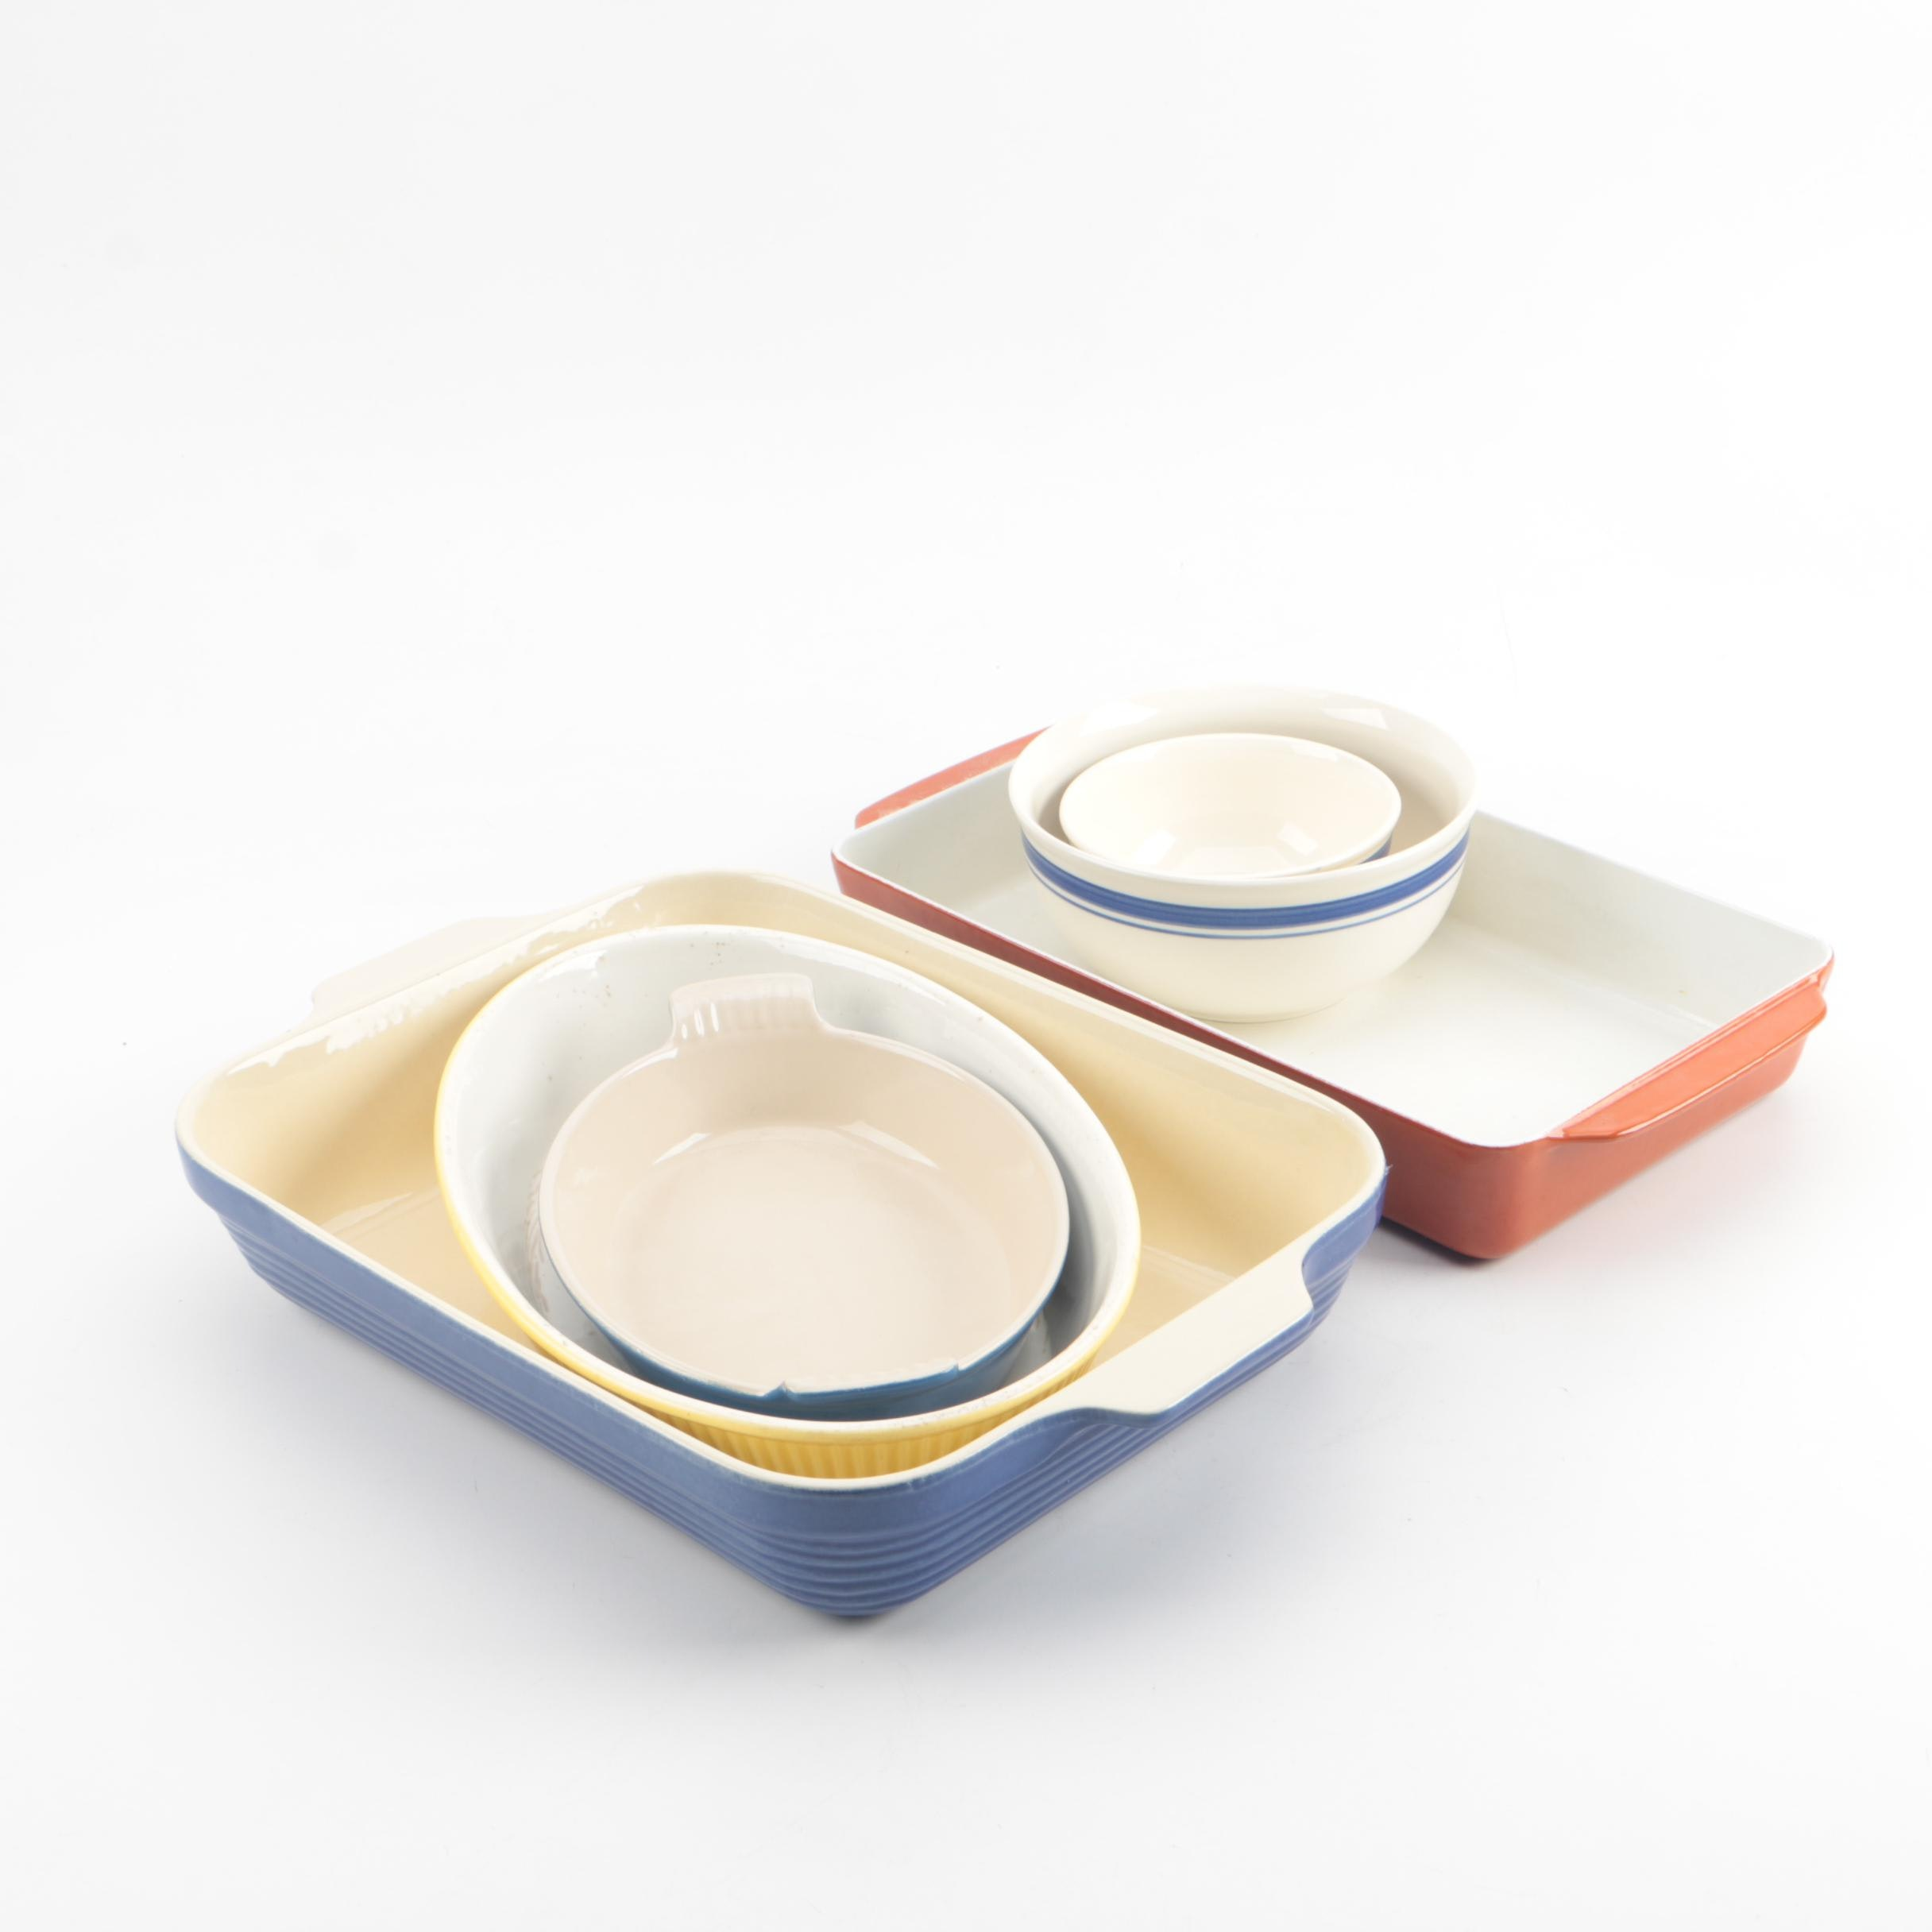 Enamel and Ceramic Baking Dishes and Mixing Bowls including Le Creuset